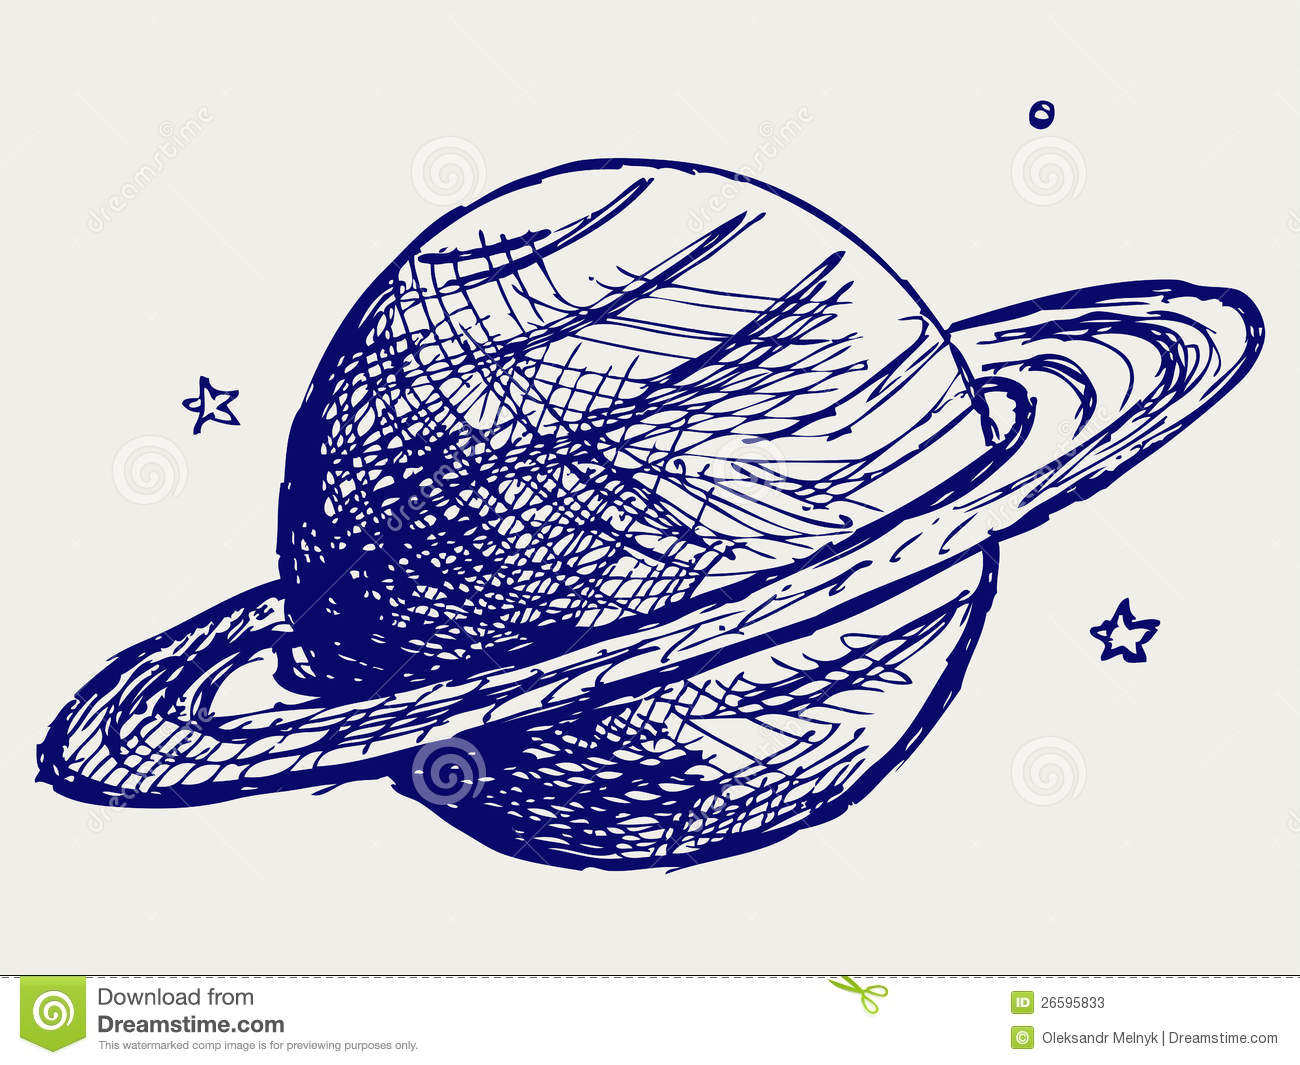 planet saturn drawing - photo #28